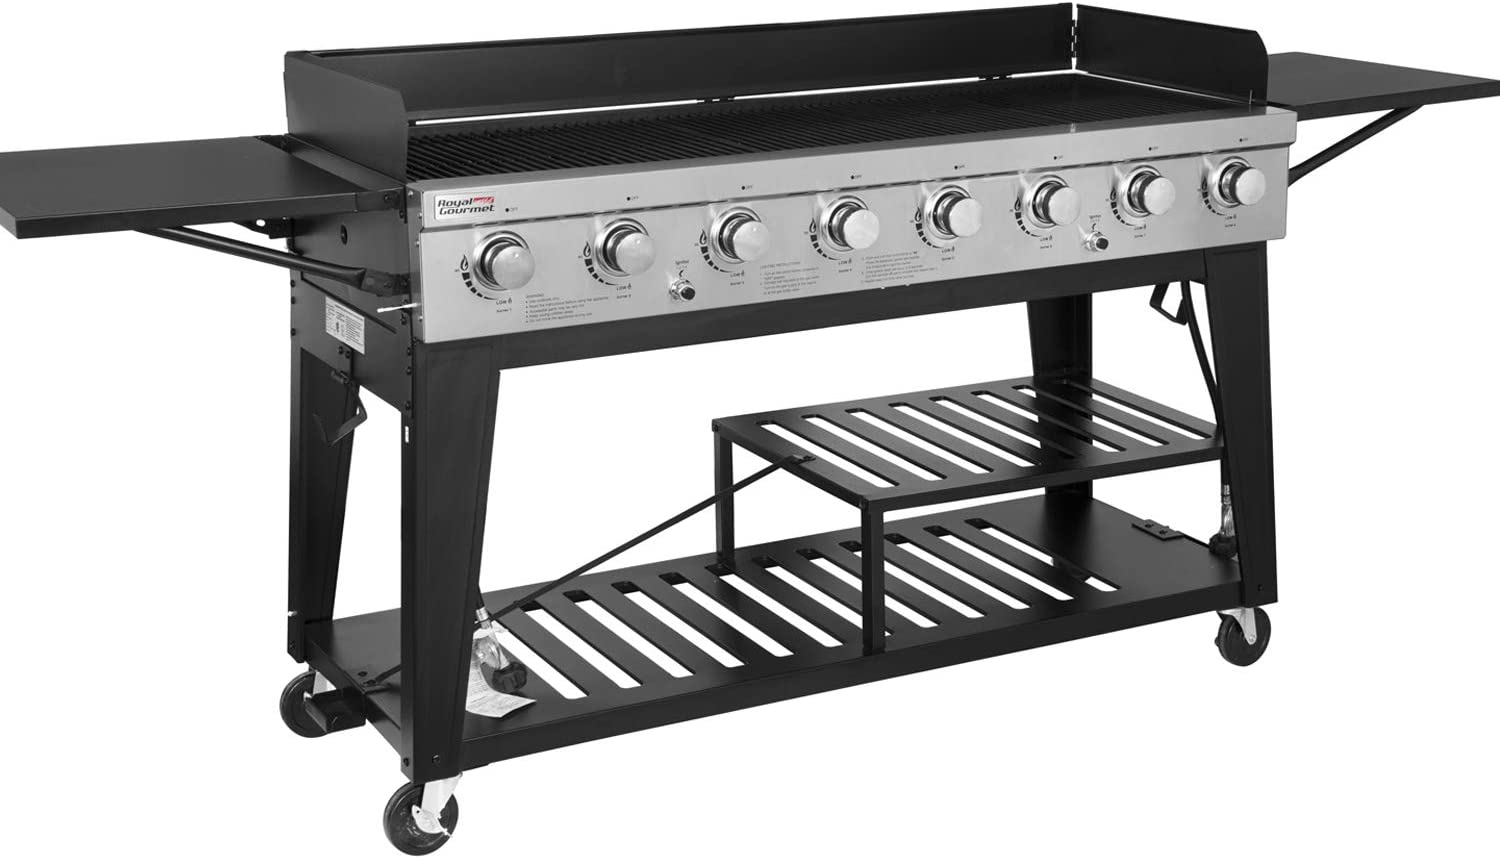 Royal Gourmet GB8000 8 burner grill